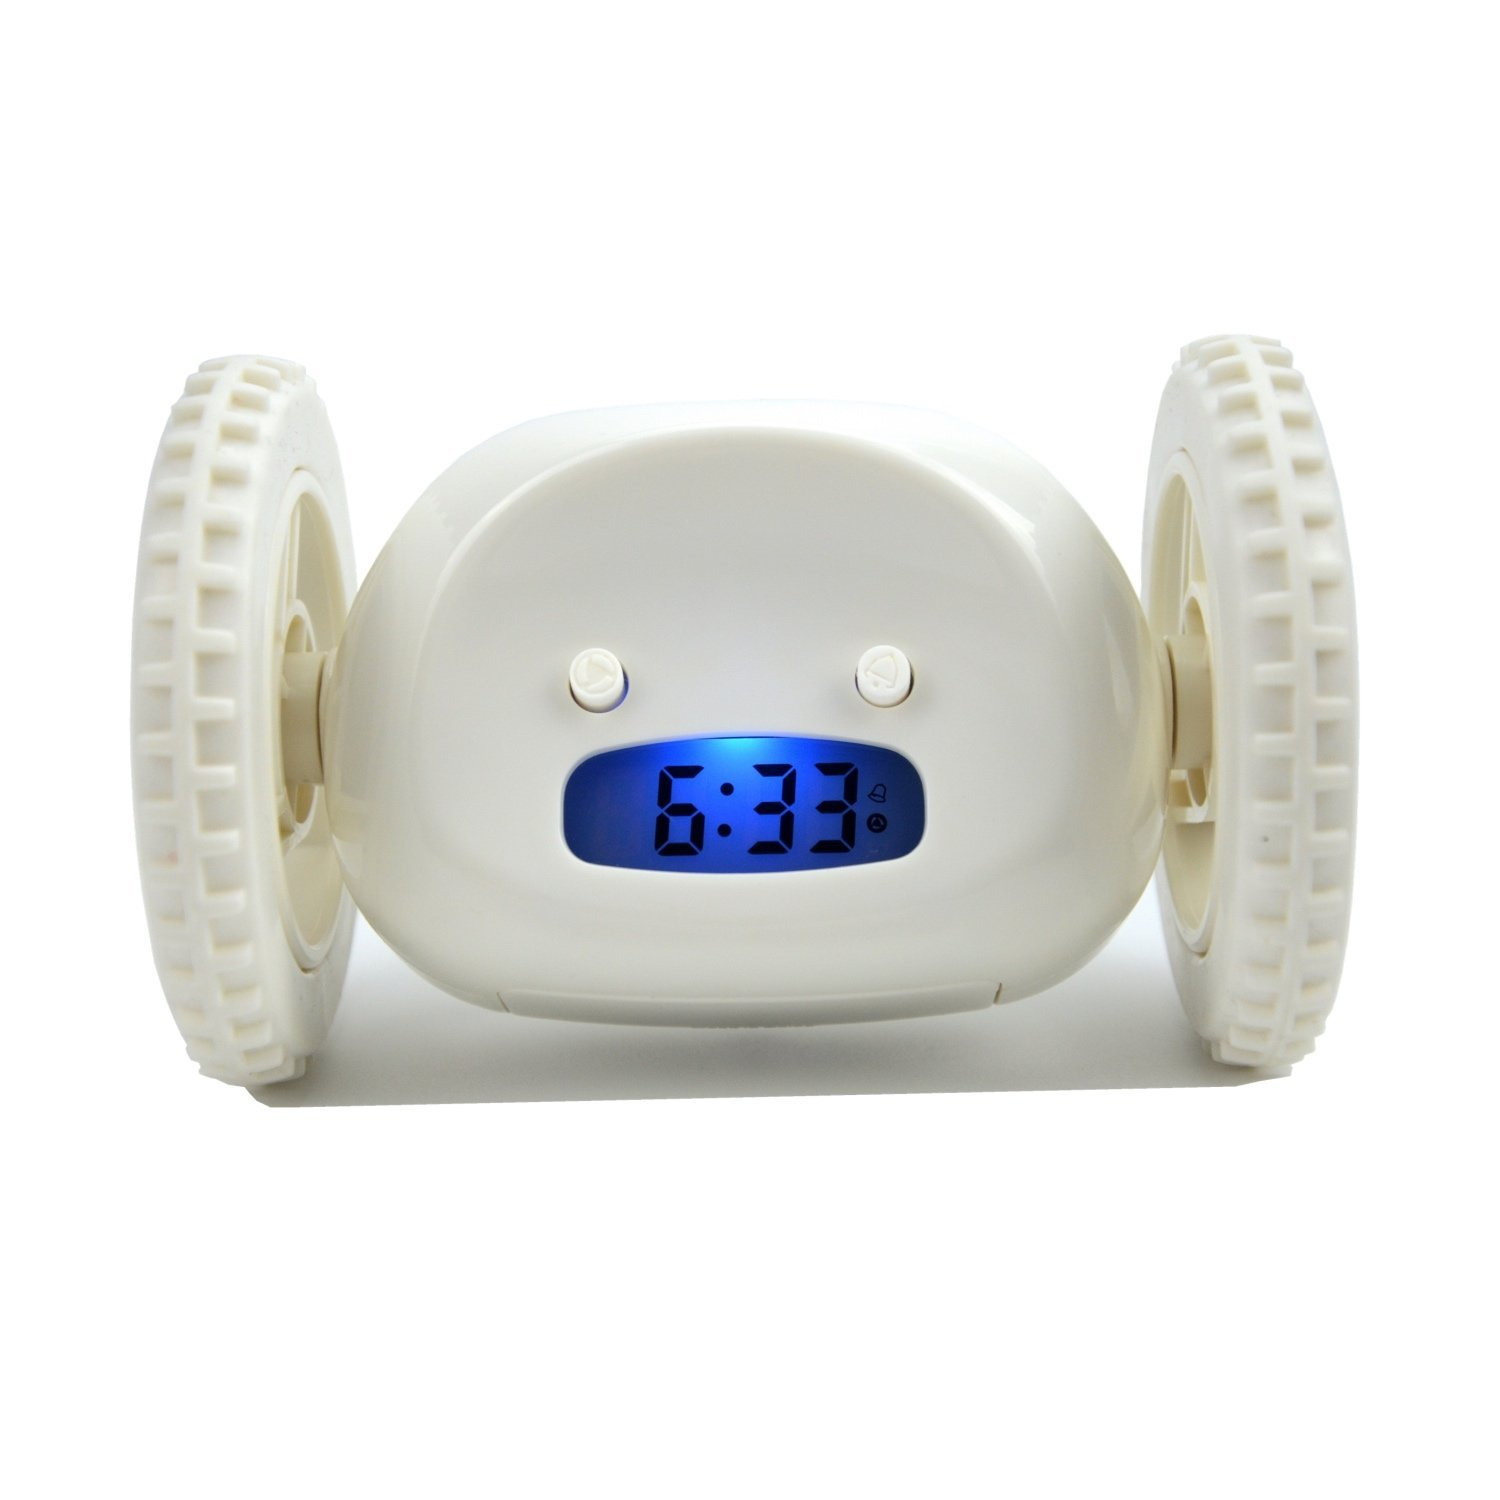 Ning store Alarm Clock on Wheels Runaway Alarm Clock Heavy Sleepers Alarm Clock Snooze Alarm Clock